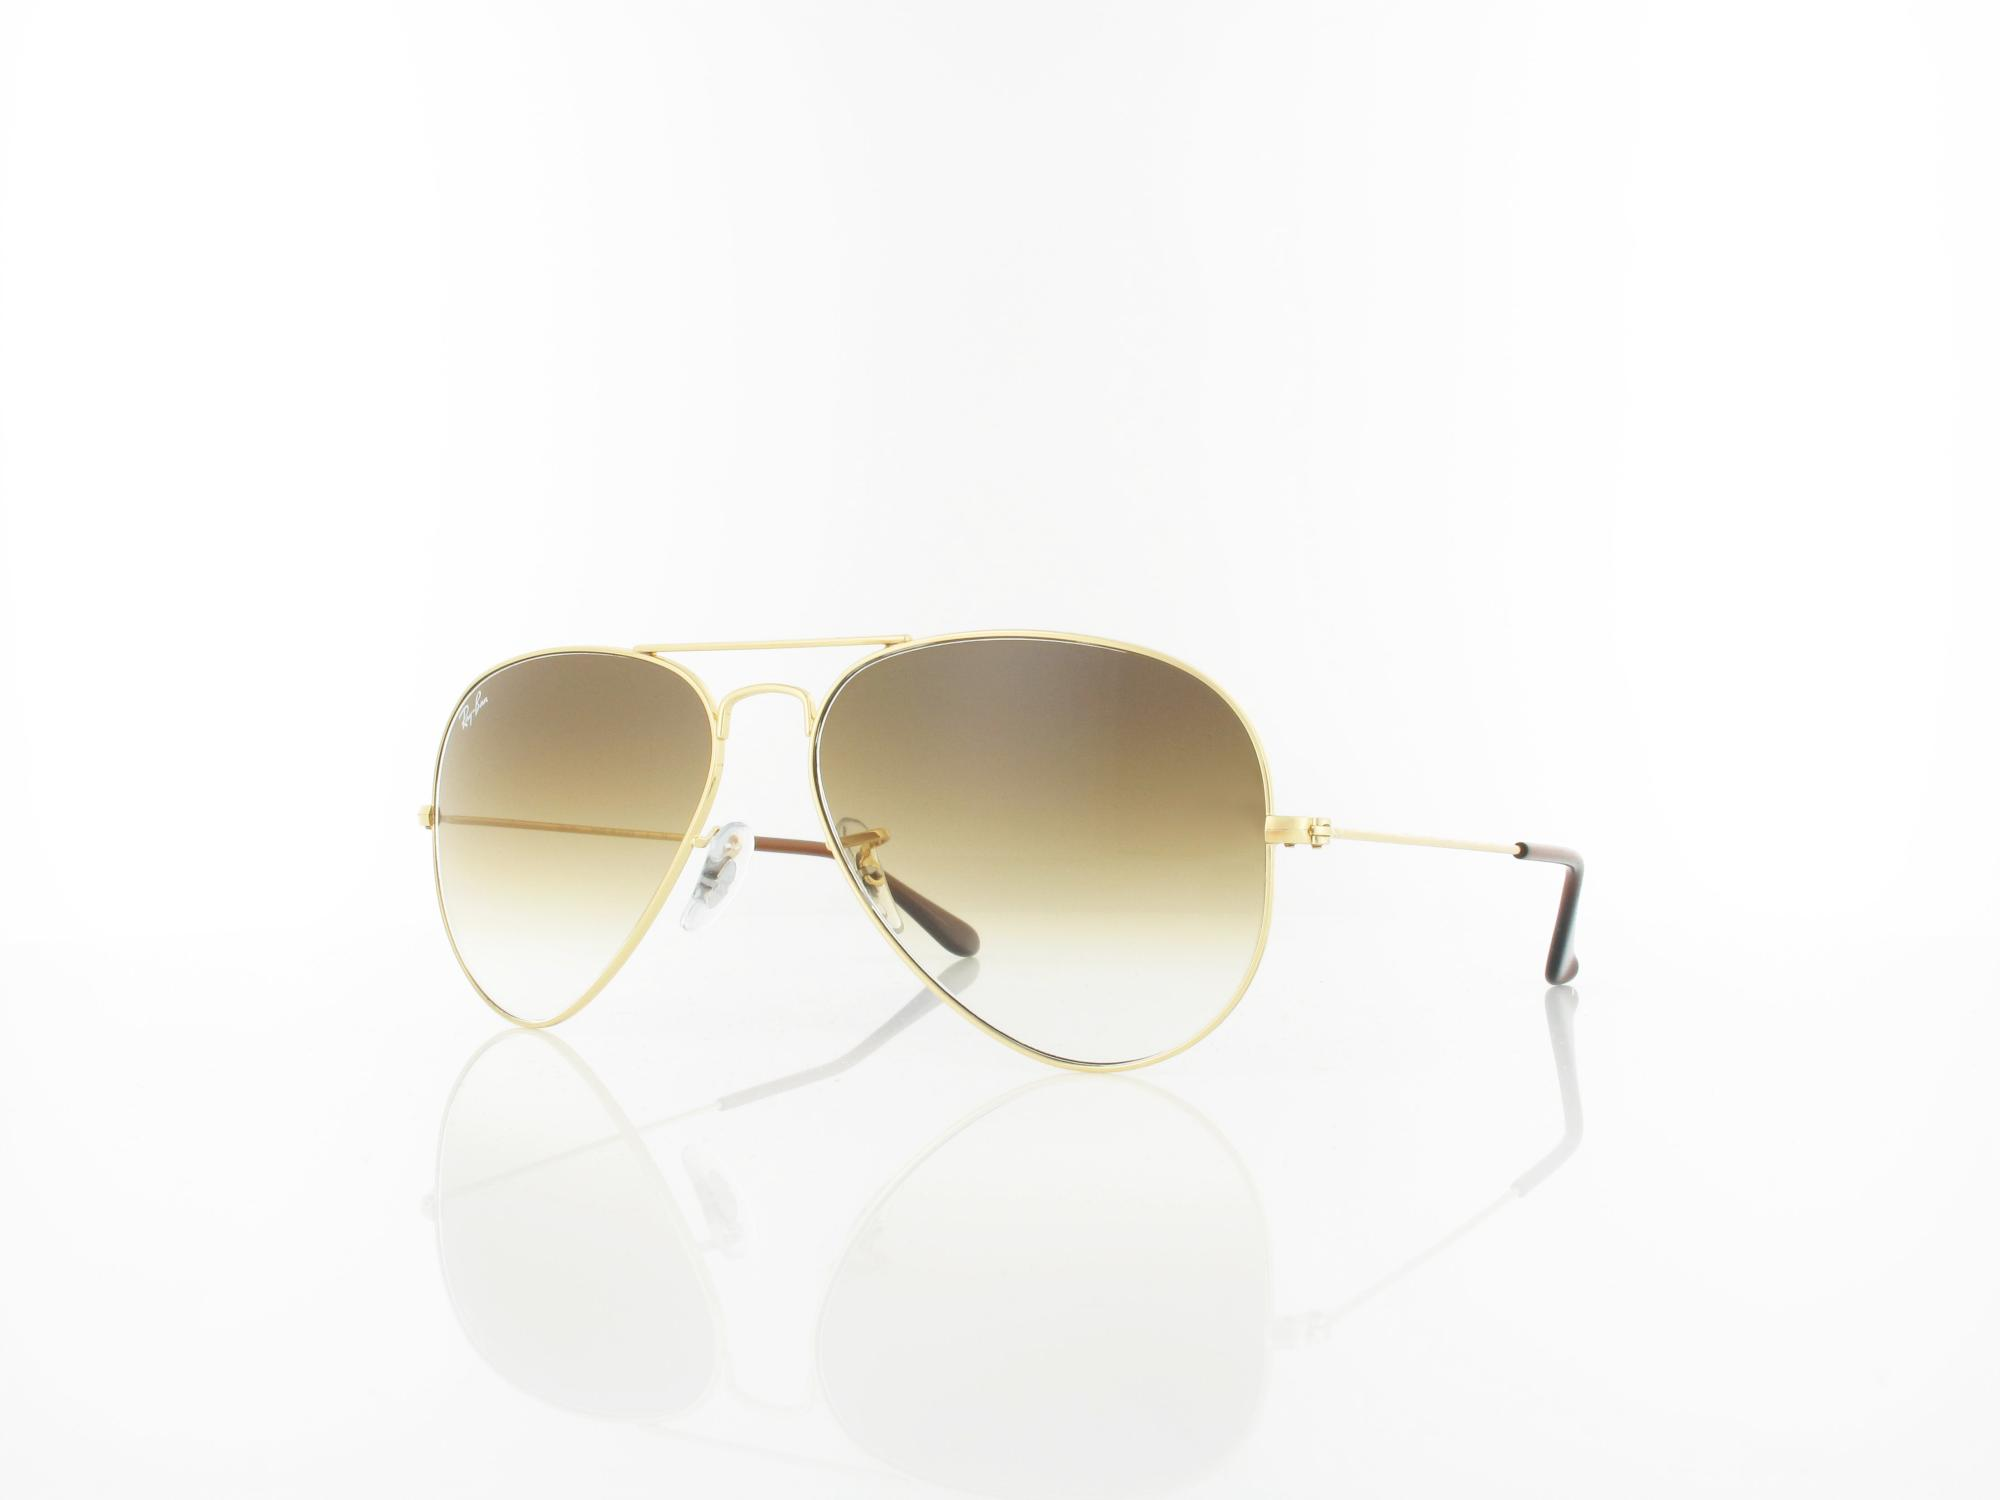 Ray Ban | Aviator Large Metal RB3025 001/51 58 | arista / crystal brown gradient